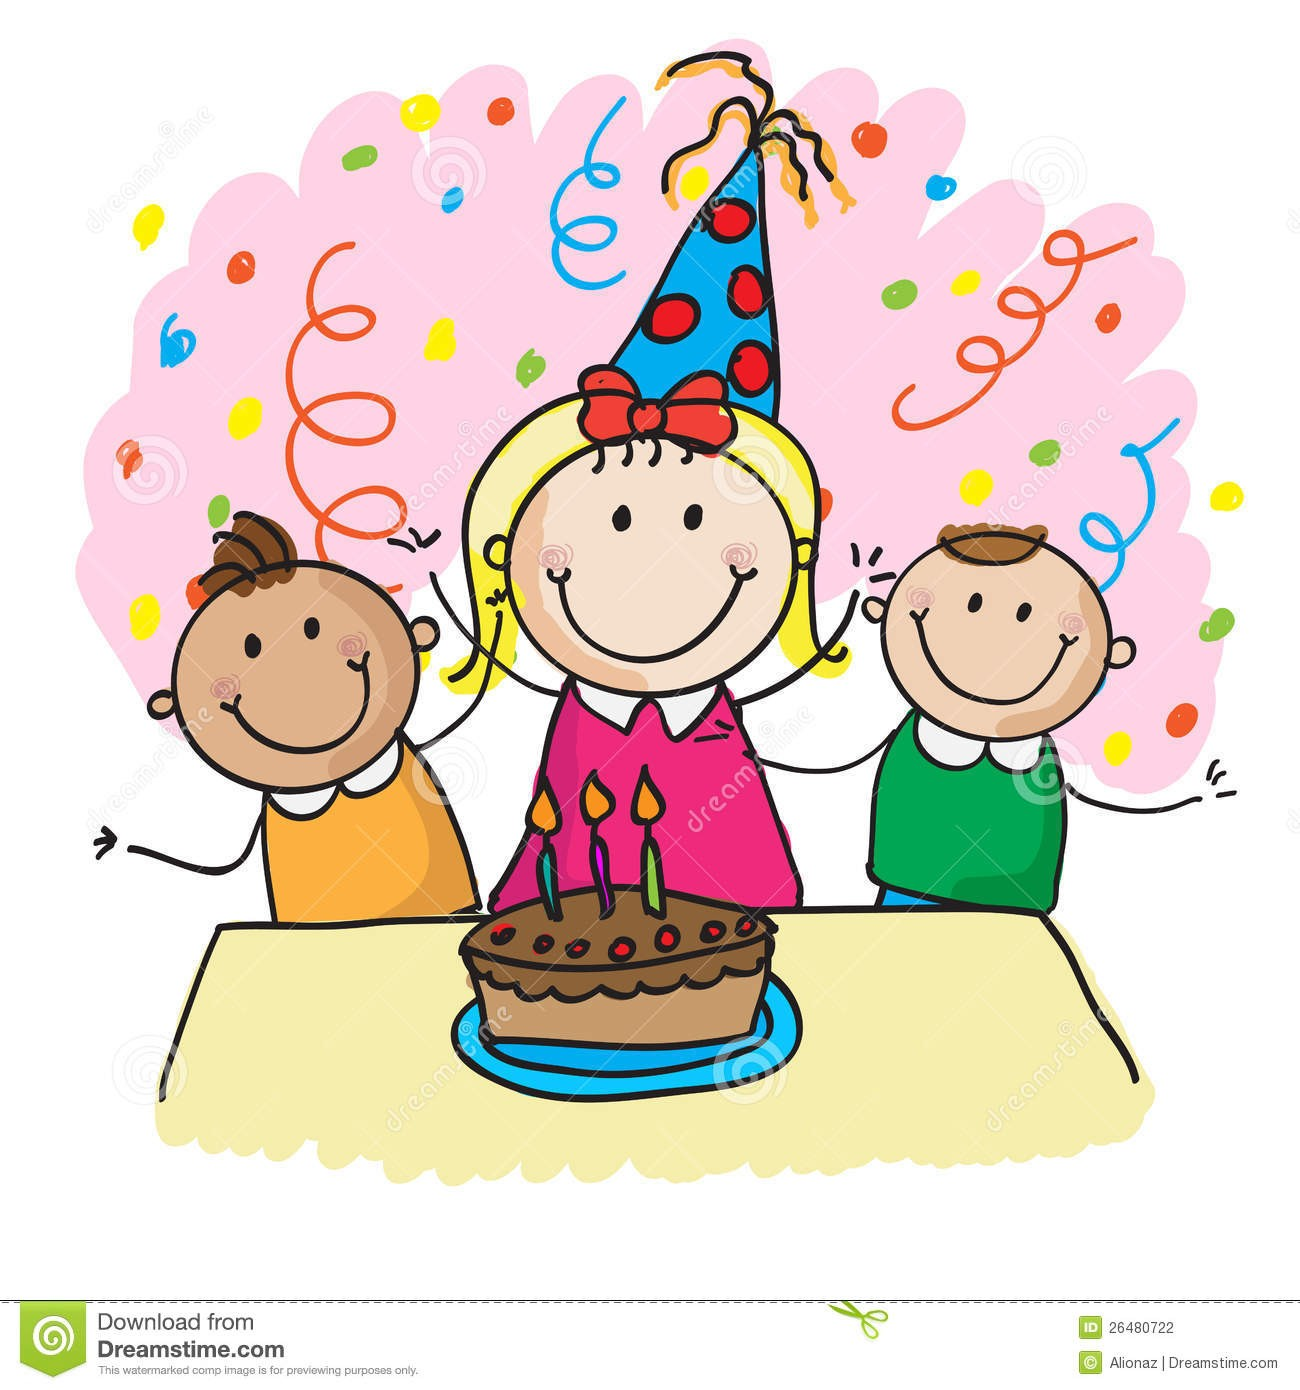 Birthday celebration clipart picture freeuse library Birthday Party Images Clip Art 28 Before Celebration Clipart | Clipart picture freeuse library